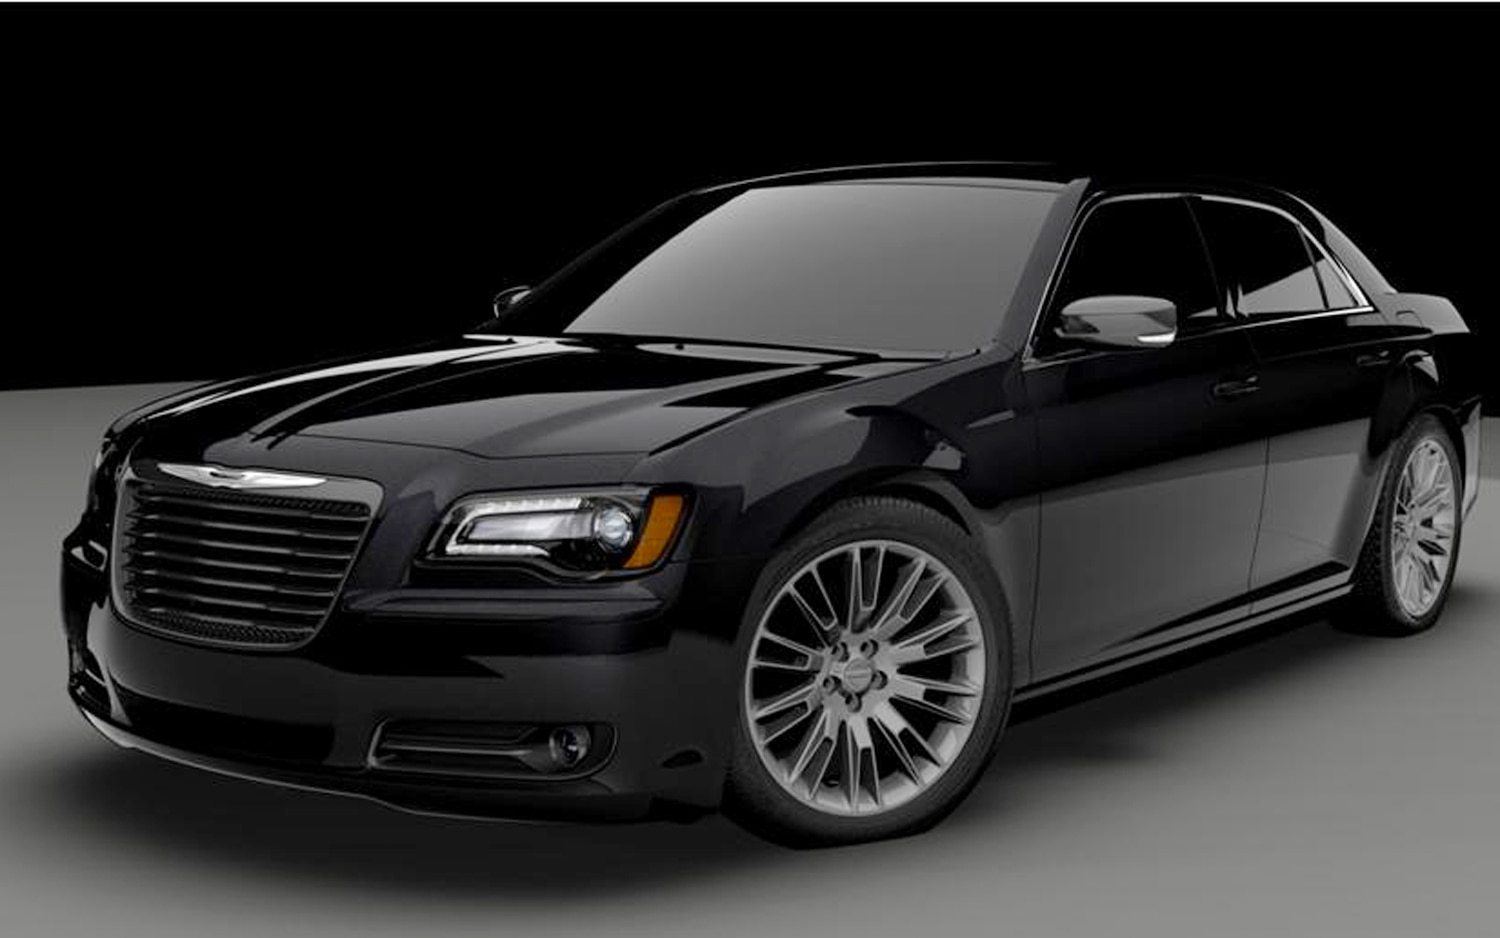 2012 chrysler 300s by john varvatos to be auctioned for charity. Black Bedroom Furniture Sets. Home Design Ideas